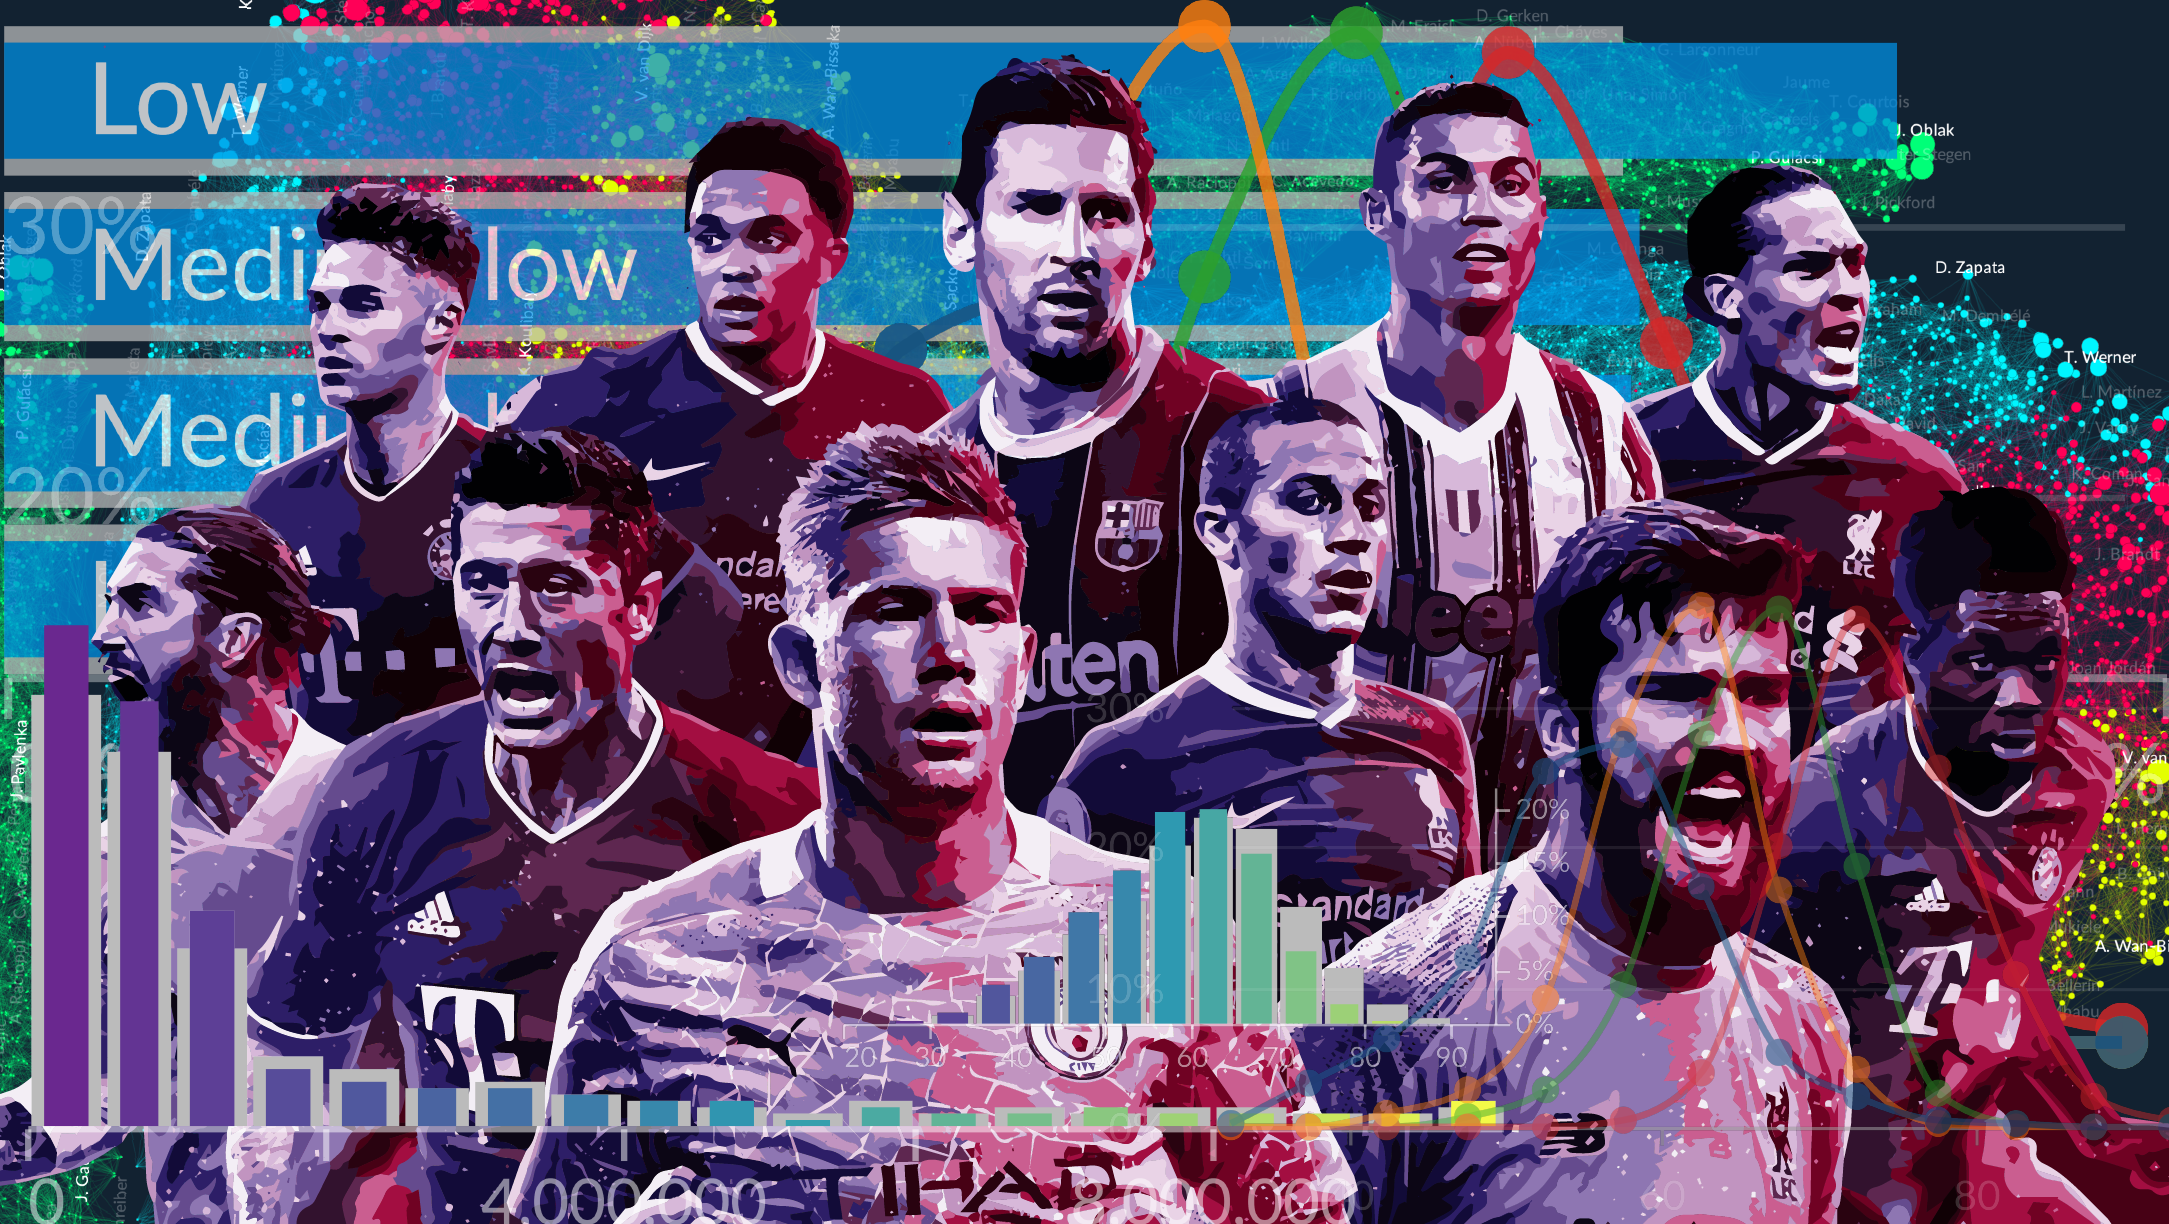 Our team set out to build an exceptional football team for less than 100M Euros. Using data provided in the FIFA 2020/2021 dataset - the video game - we built a prediction model in order to find the key performance attributes for each position. Then, we used this to pick out a team of excellent but undervalued players.